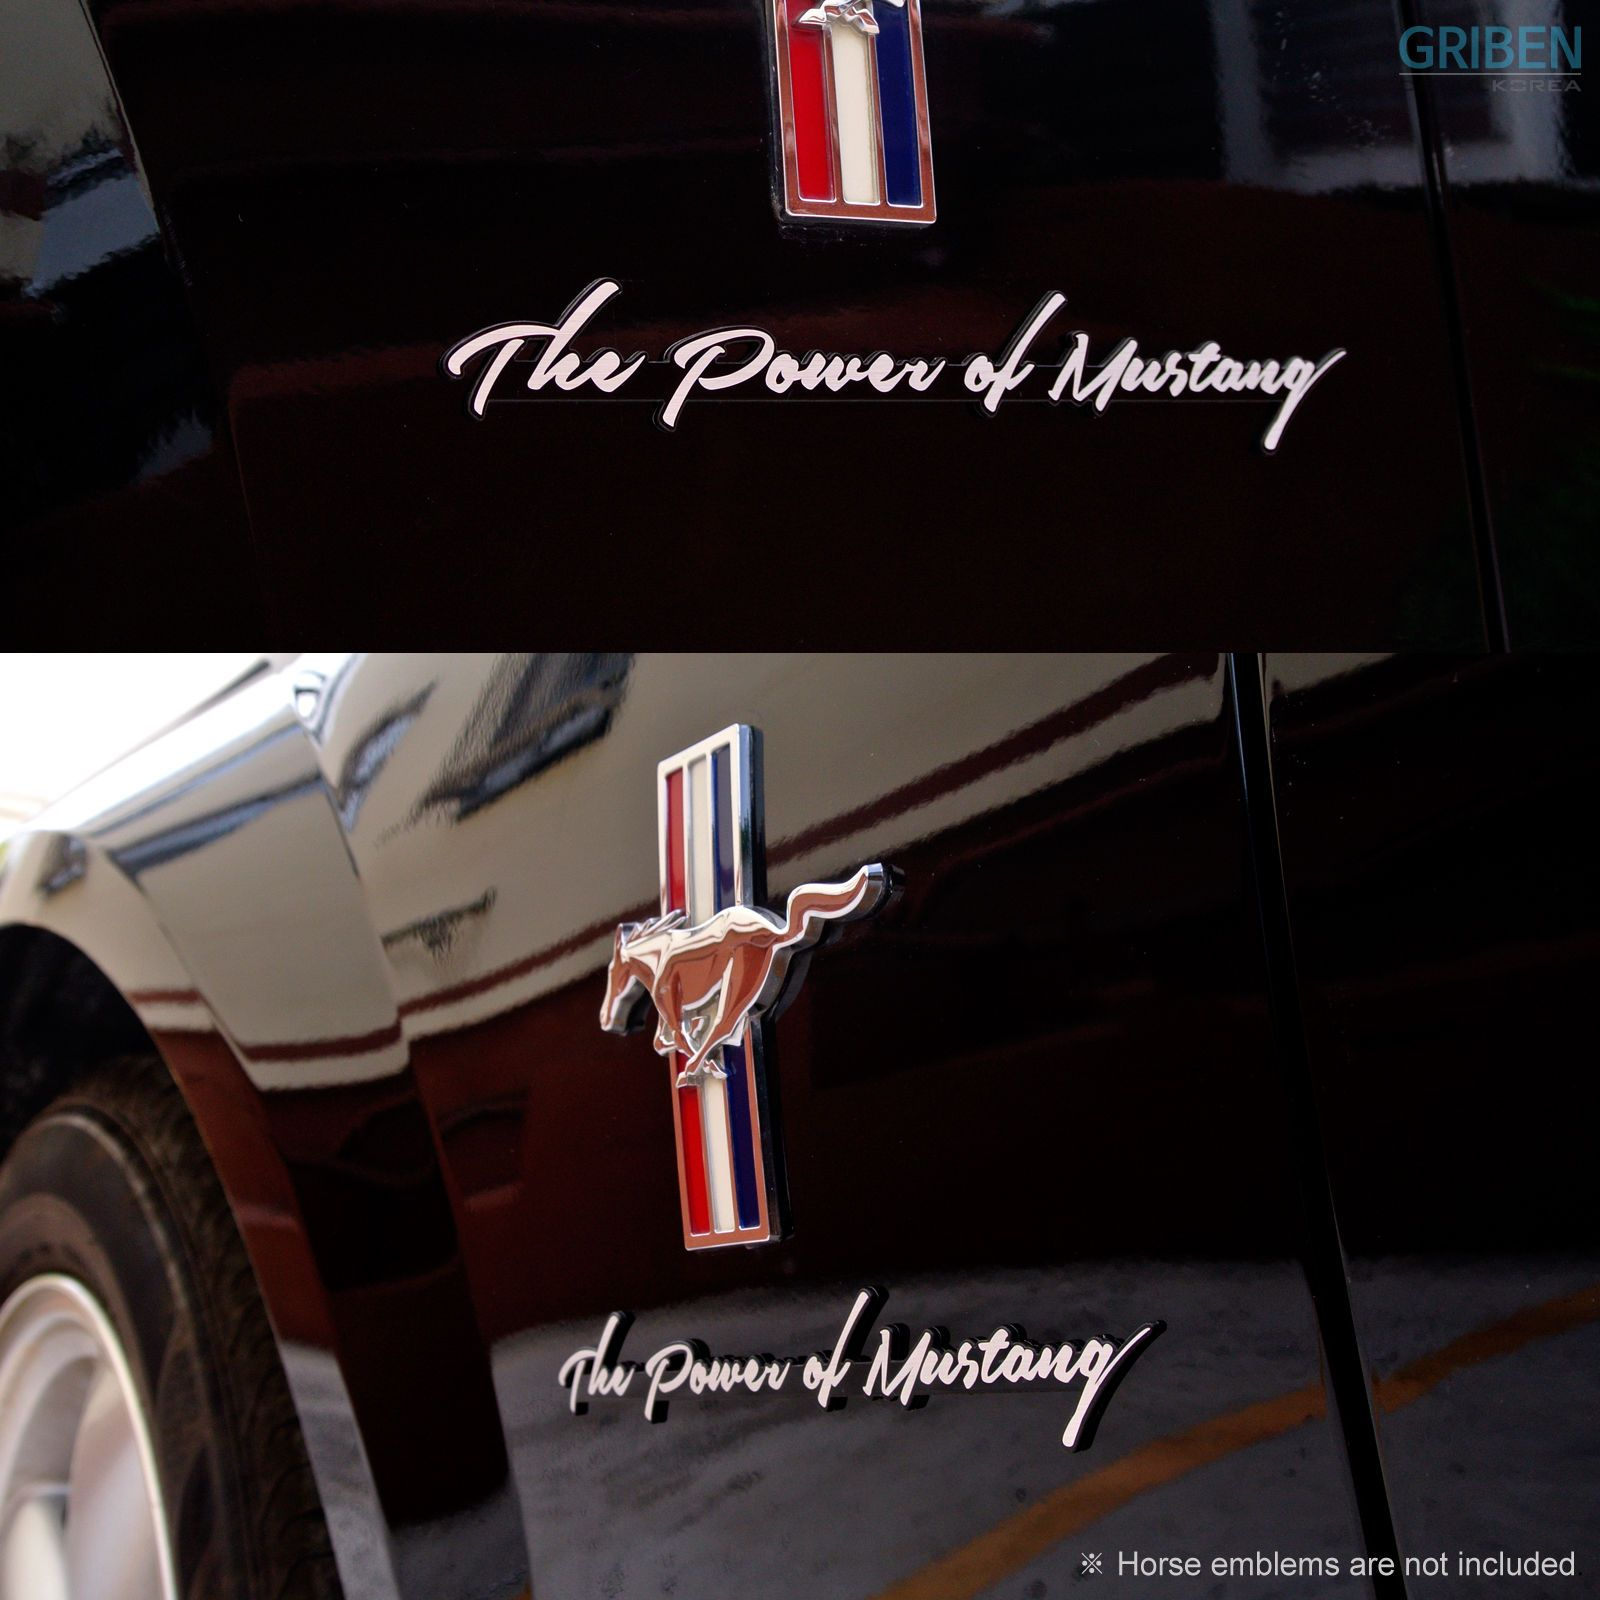 Take A Look About ford Slogans with Exciting Pictures